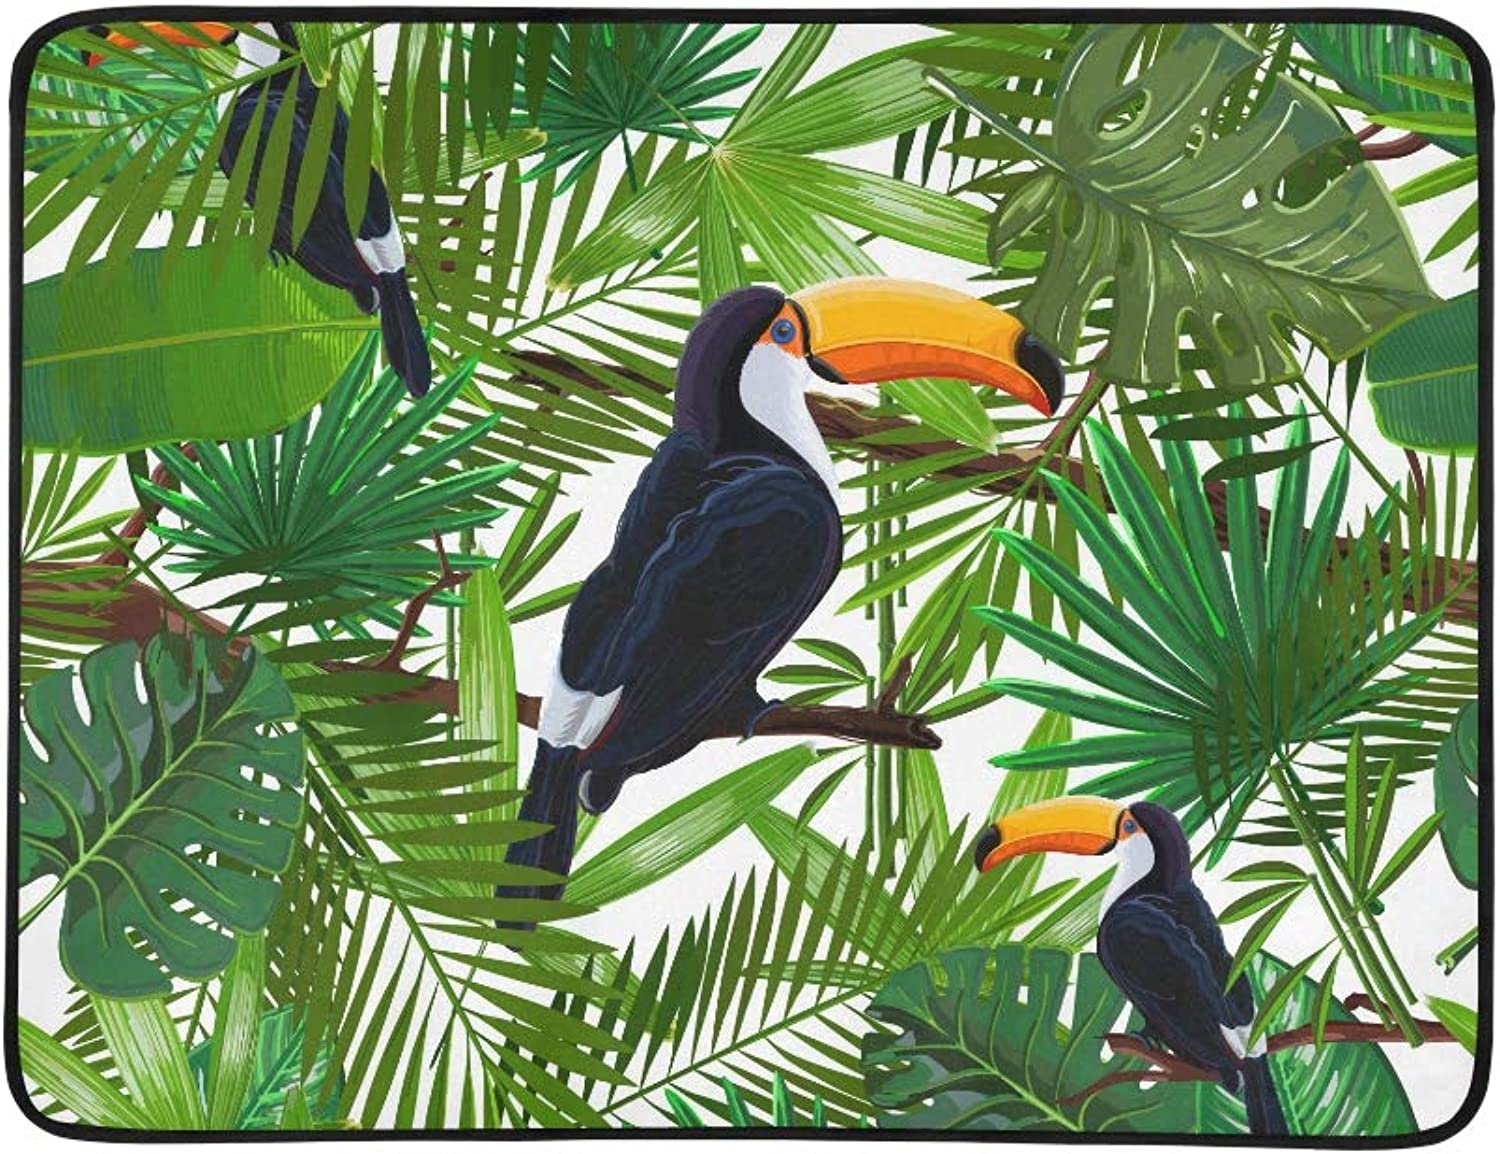 Tropical Leaves and Bird Toucan On A Branch Pattern Portable and Foldable Blanket Mat 60x78 Inch Handy Mat for Camping Picnic Beach Indoor Outdoor Travel